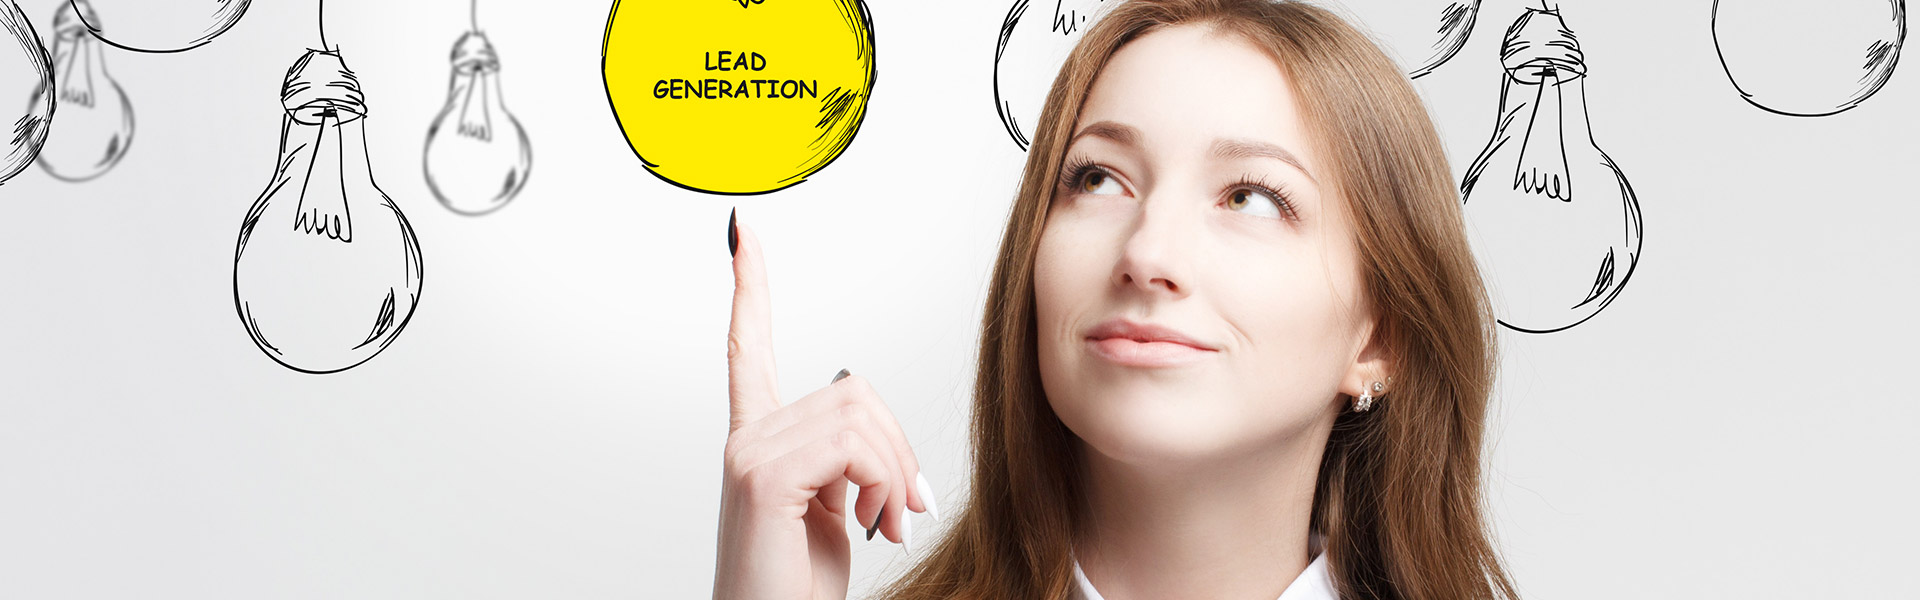 Why is lead generation important to business? - An article by Lead Genera